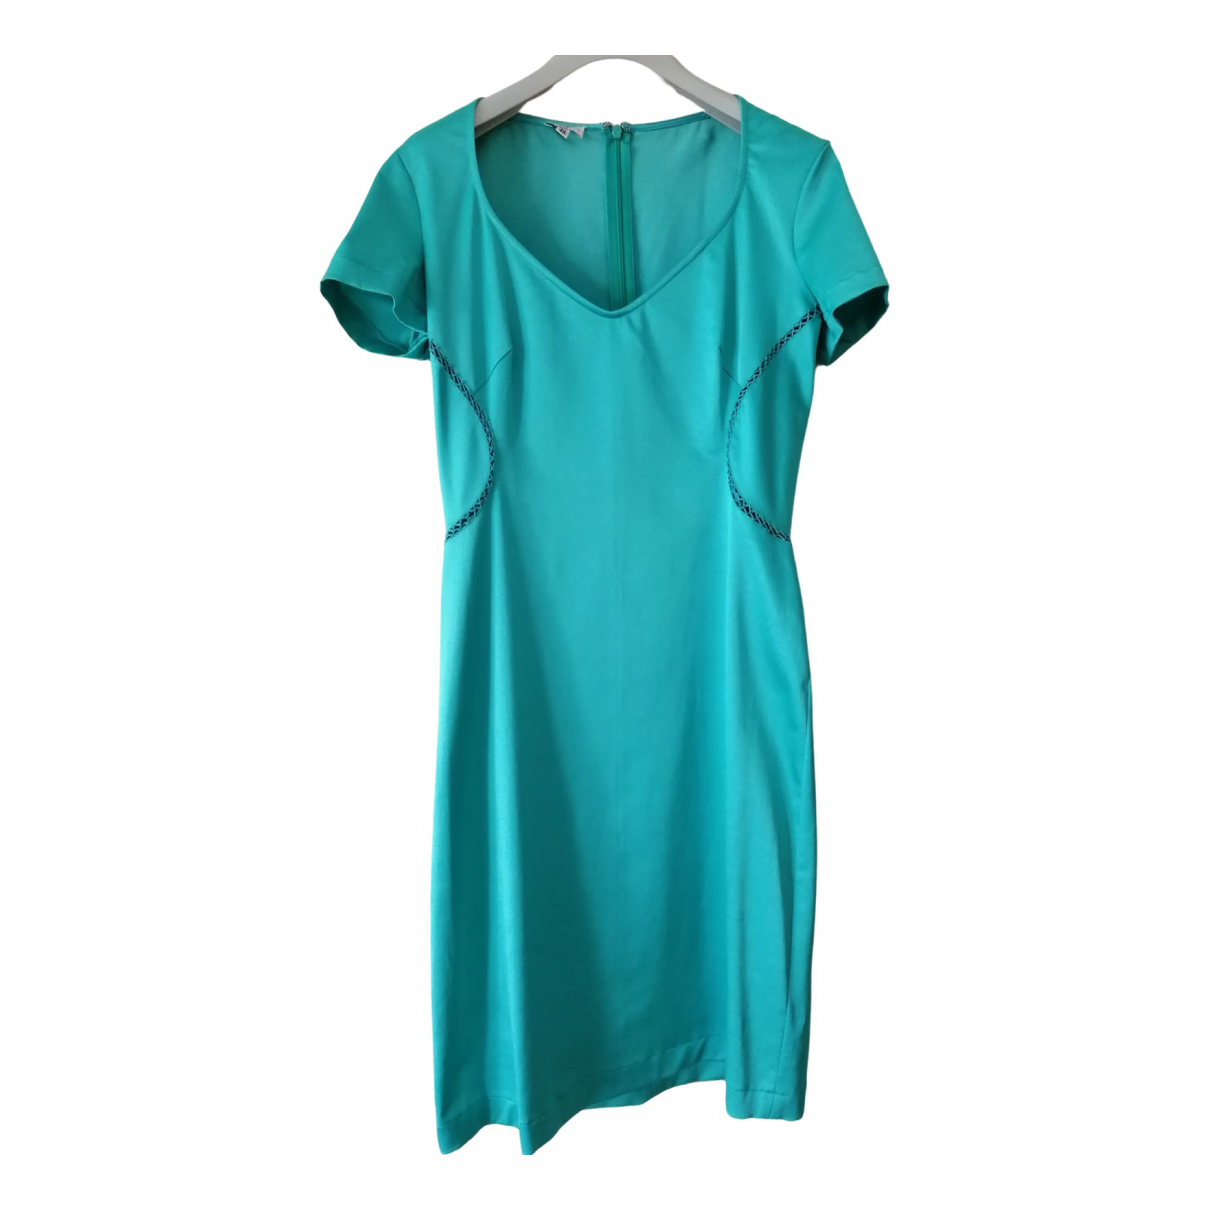 Versace Jeans \N Turquoise Cotton - elasthane dress for Women 40 IT